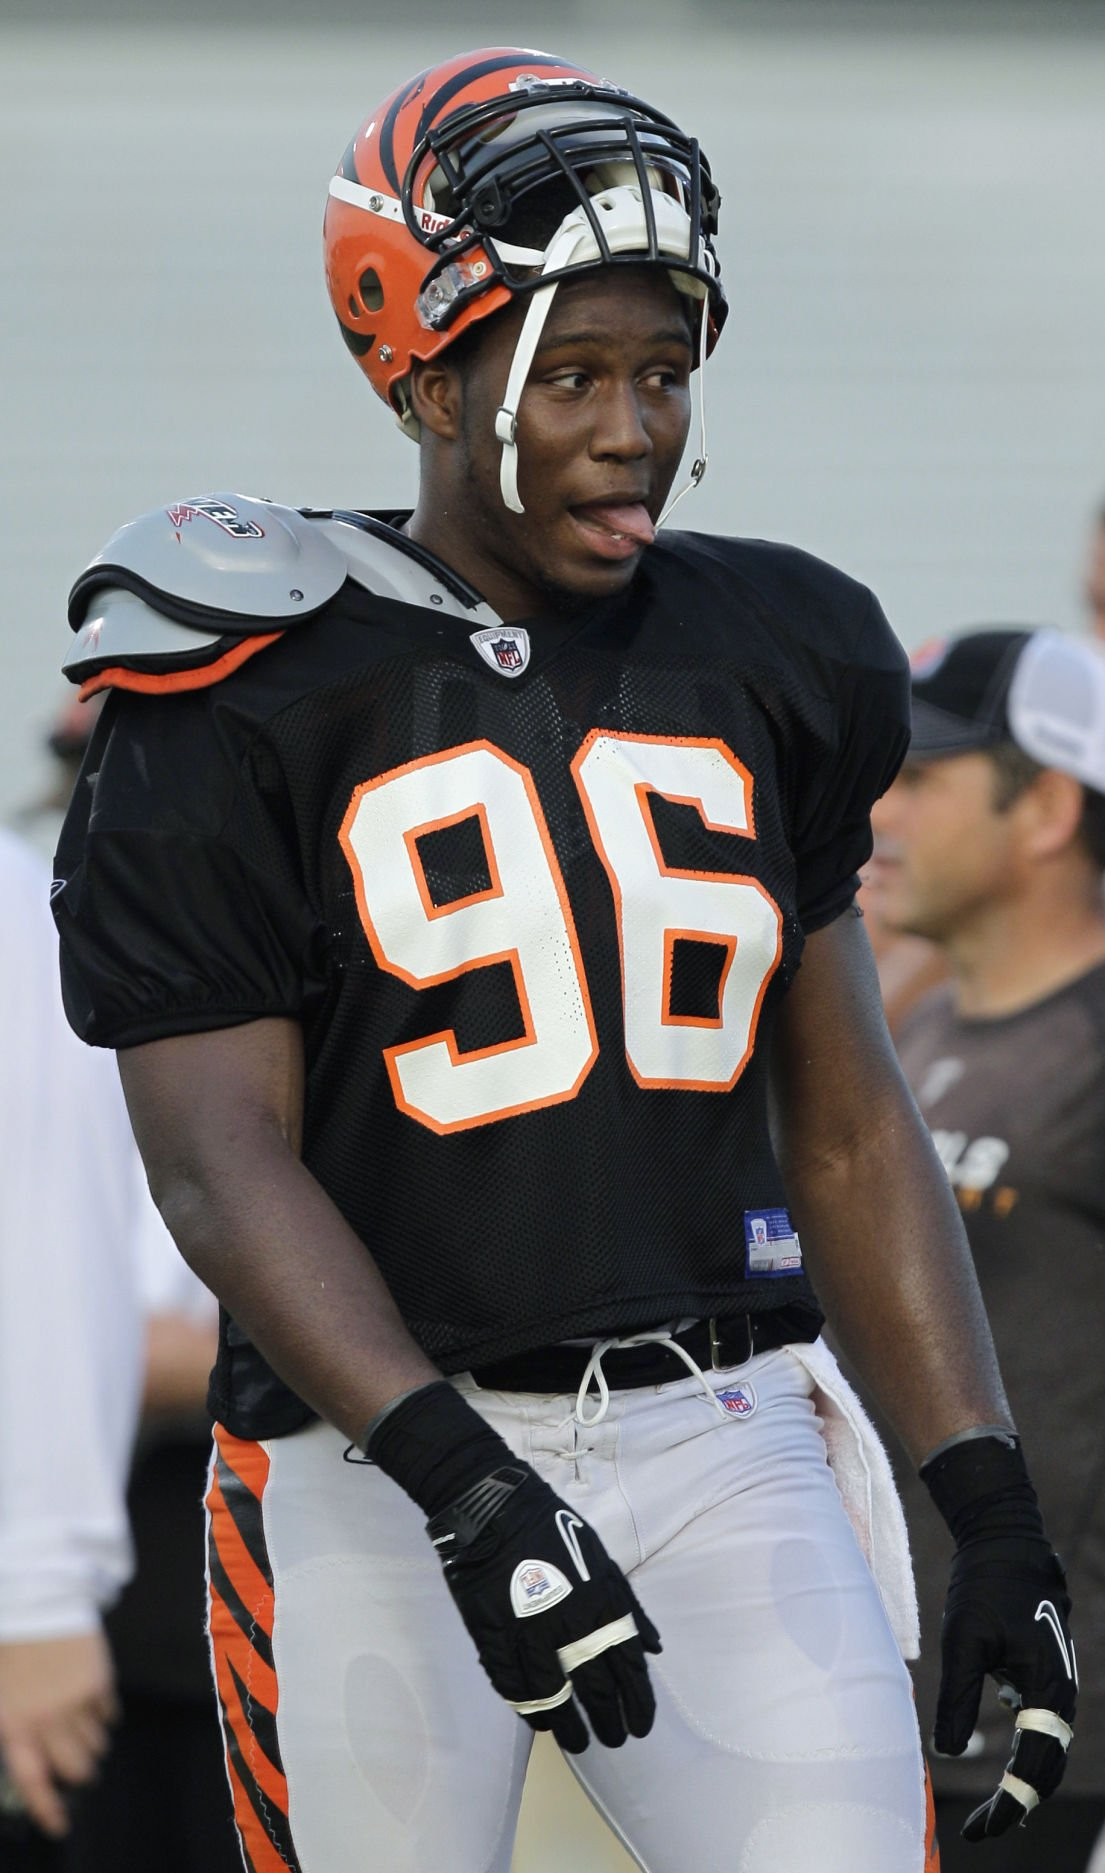 One-on-One with Carlos Dunlap